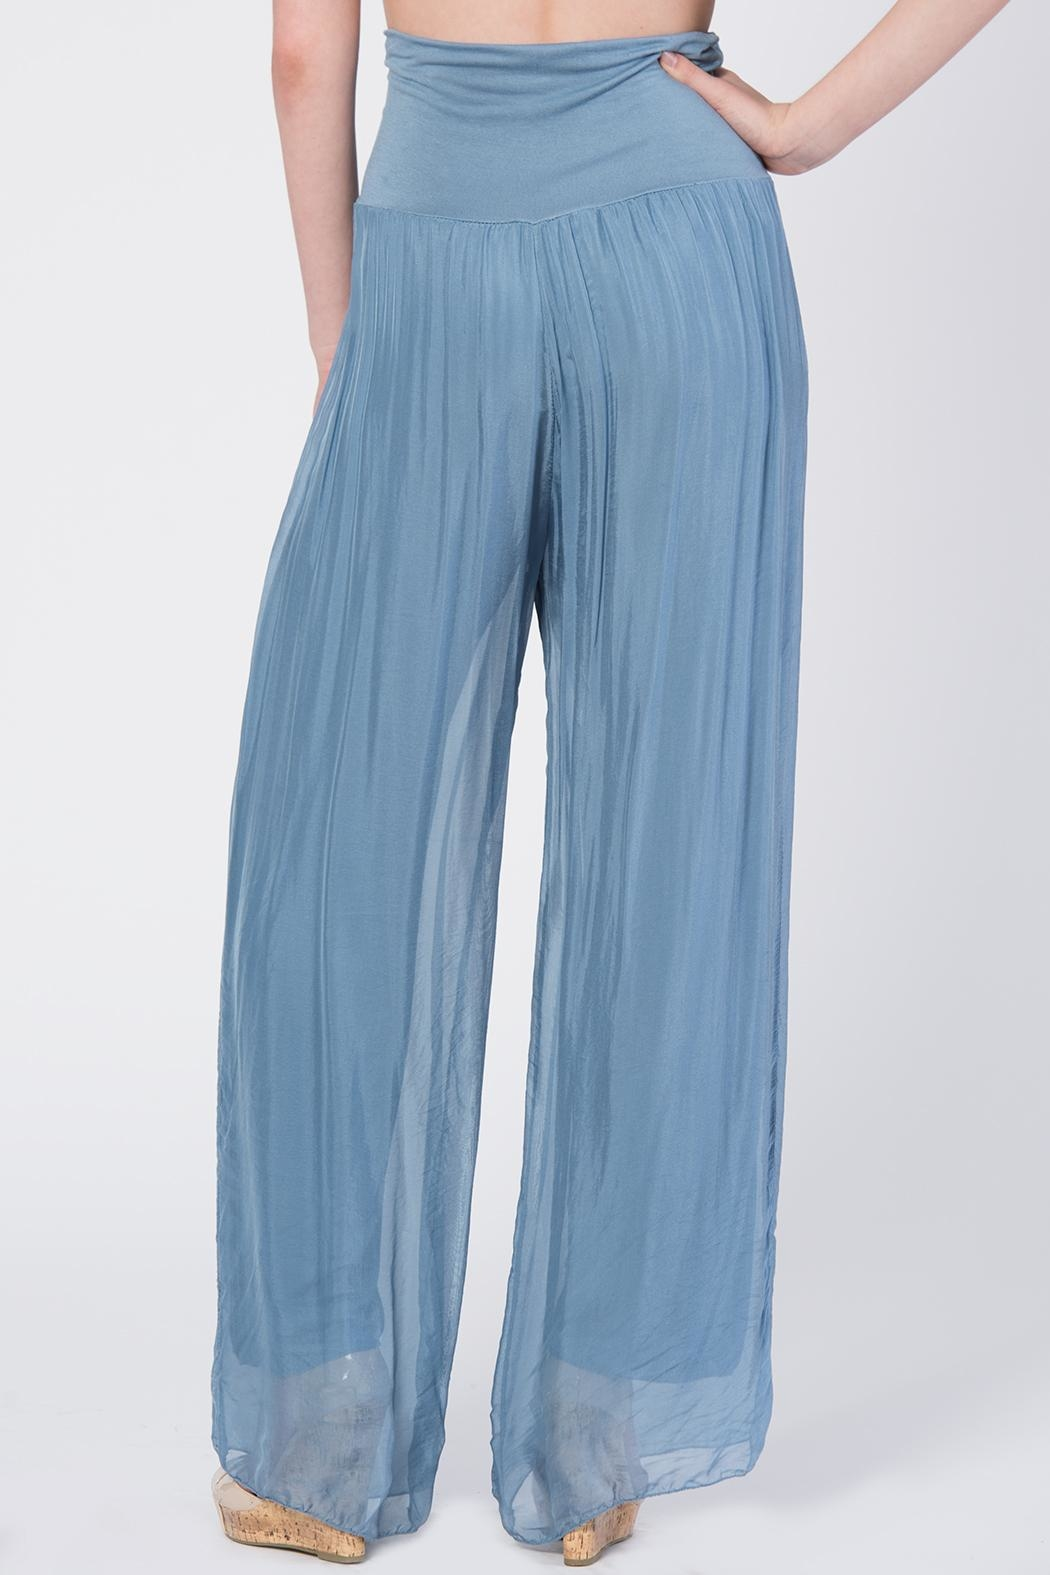 Catwalk Flowy Pleated Pants - Side Cropped Image